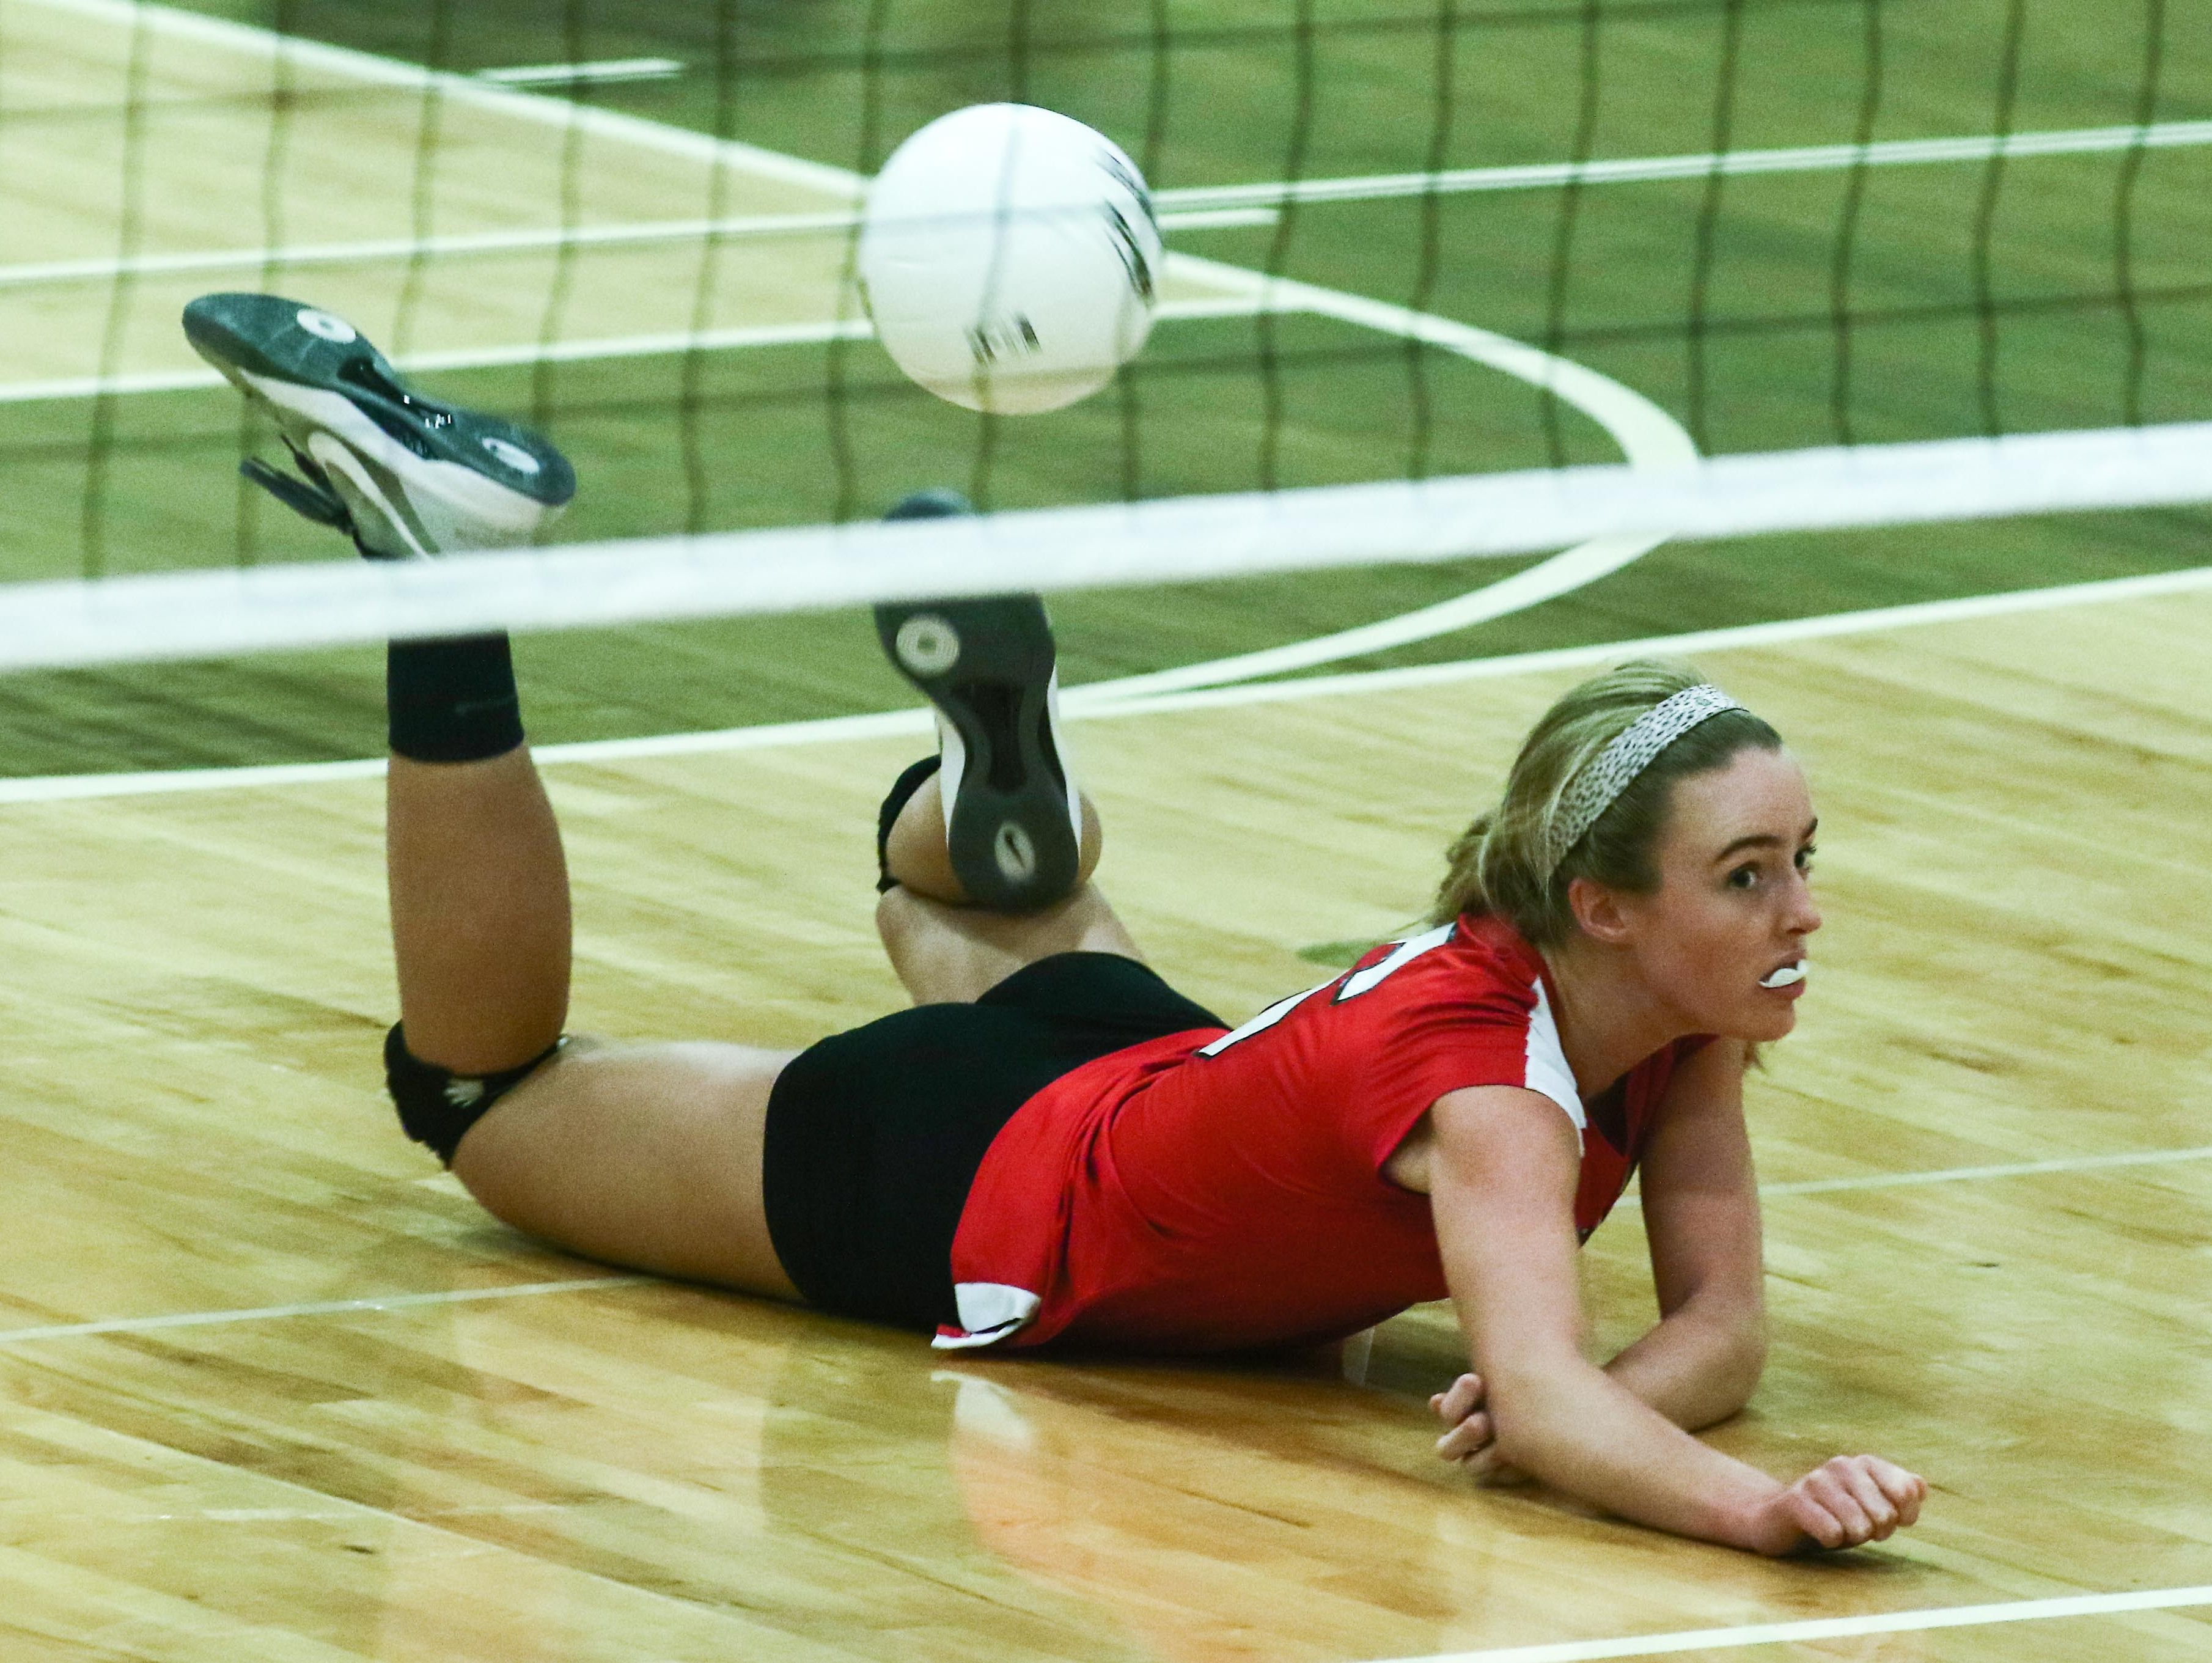 Ursuline's Corinne Furey (6) dives to save the ball during a DIAA Girls Volleyball quarterfinals match between Padua and Ursuline on Tuesday at St. Mark's High School in Wilmington.